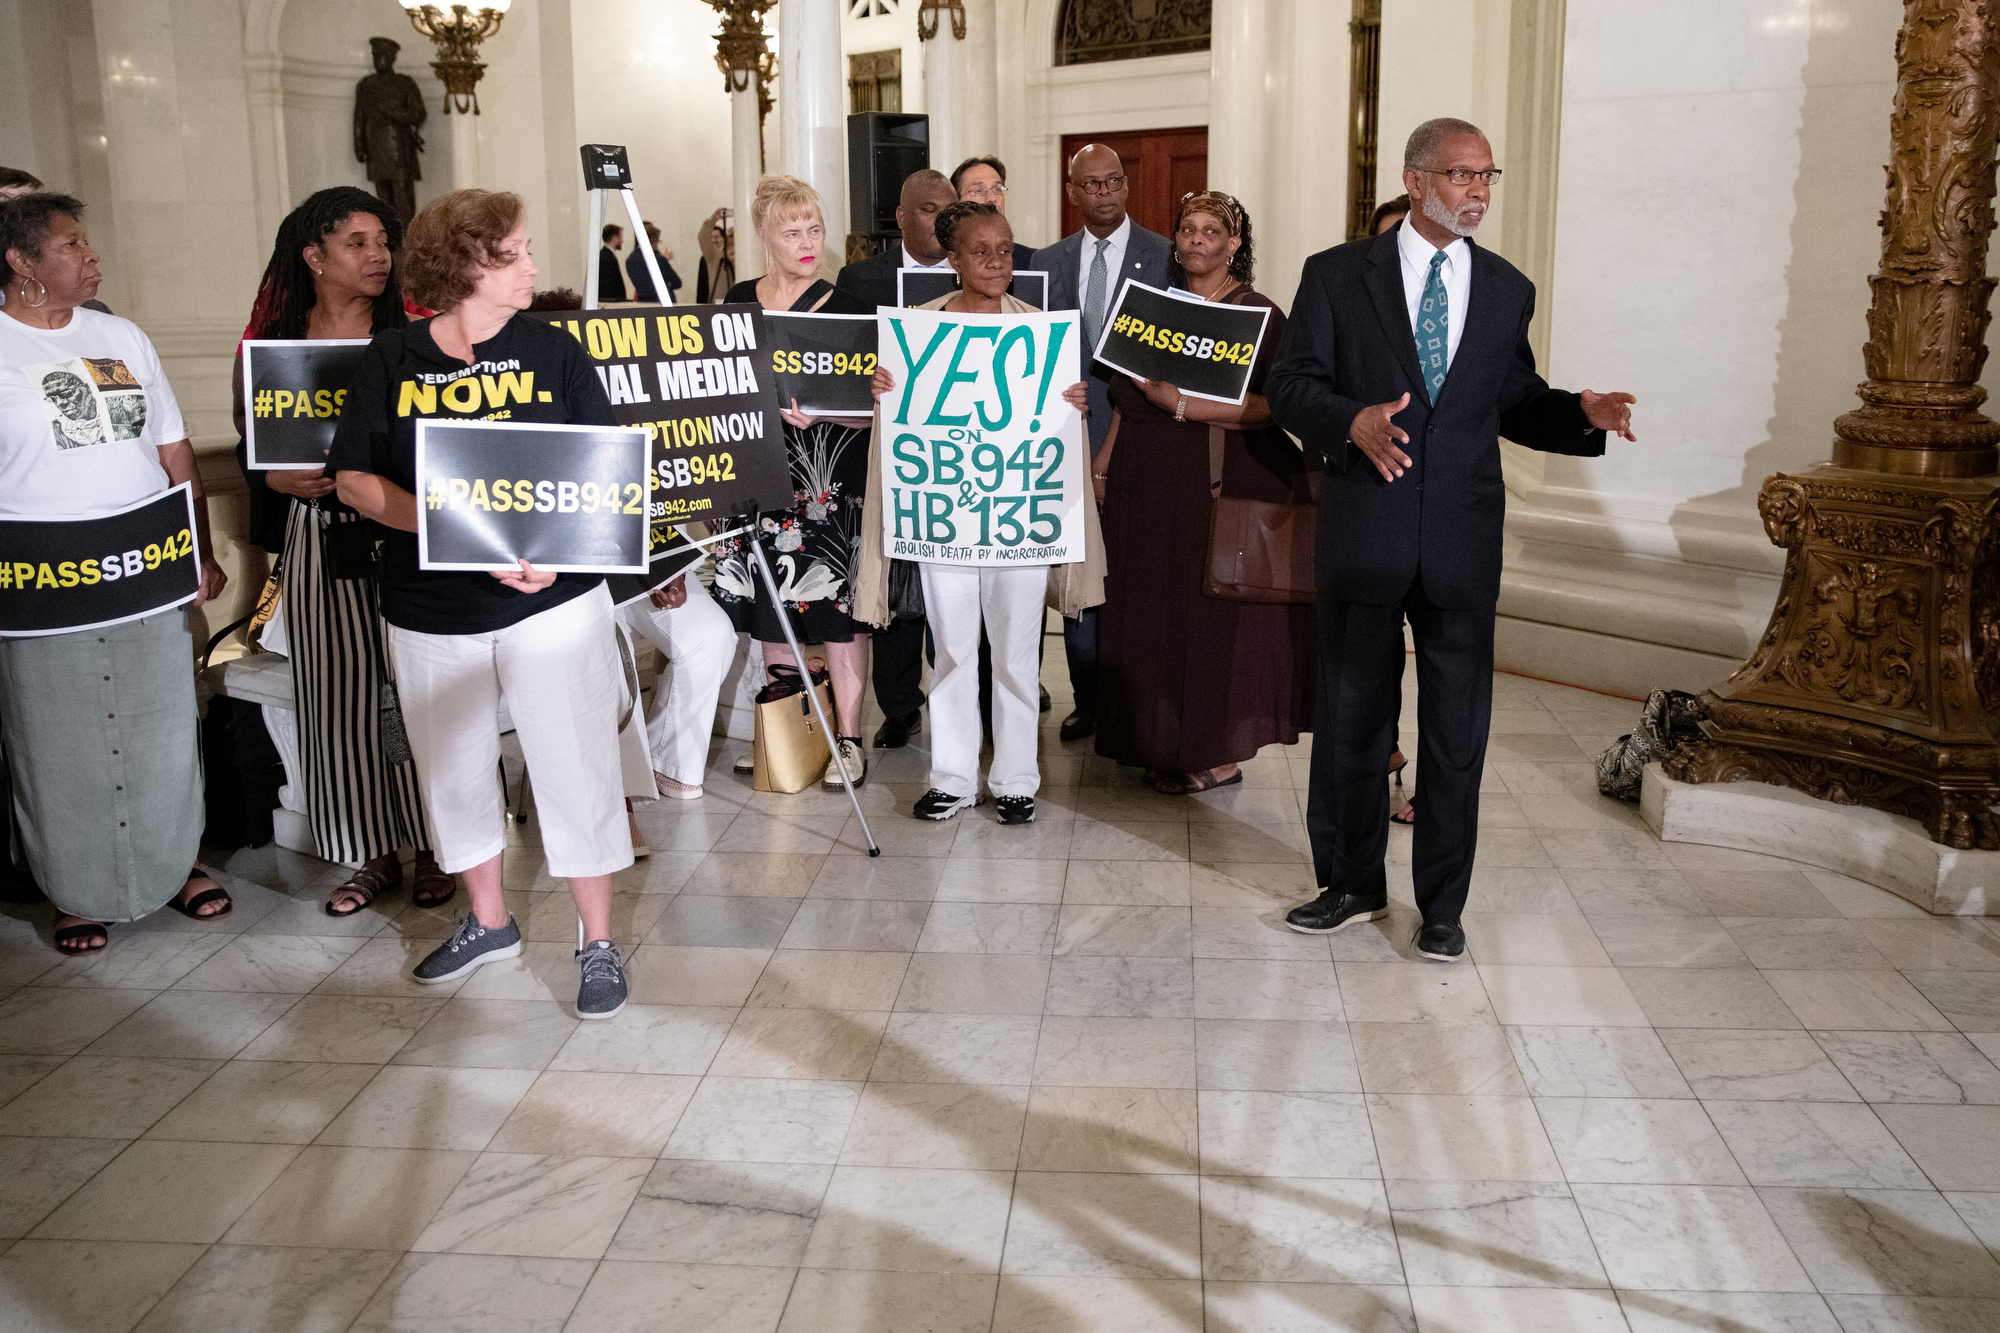 June 25, 2019: Senator Art Haywood joins colleagues in calling for parole reform.